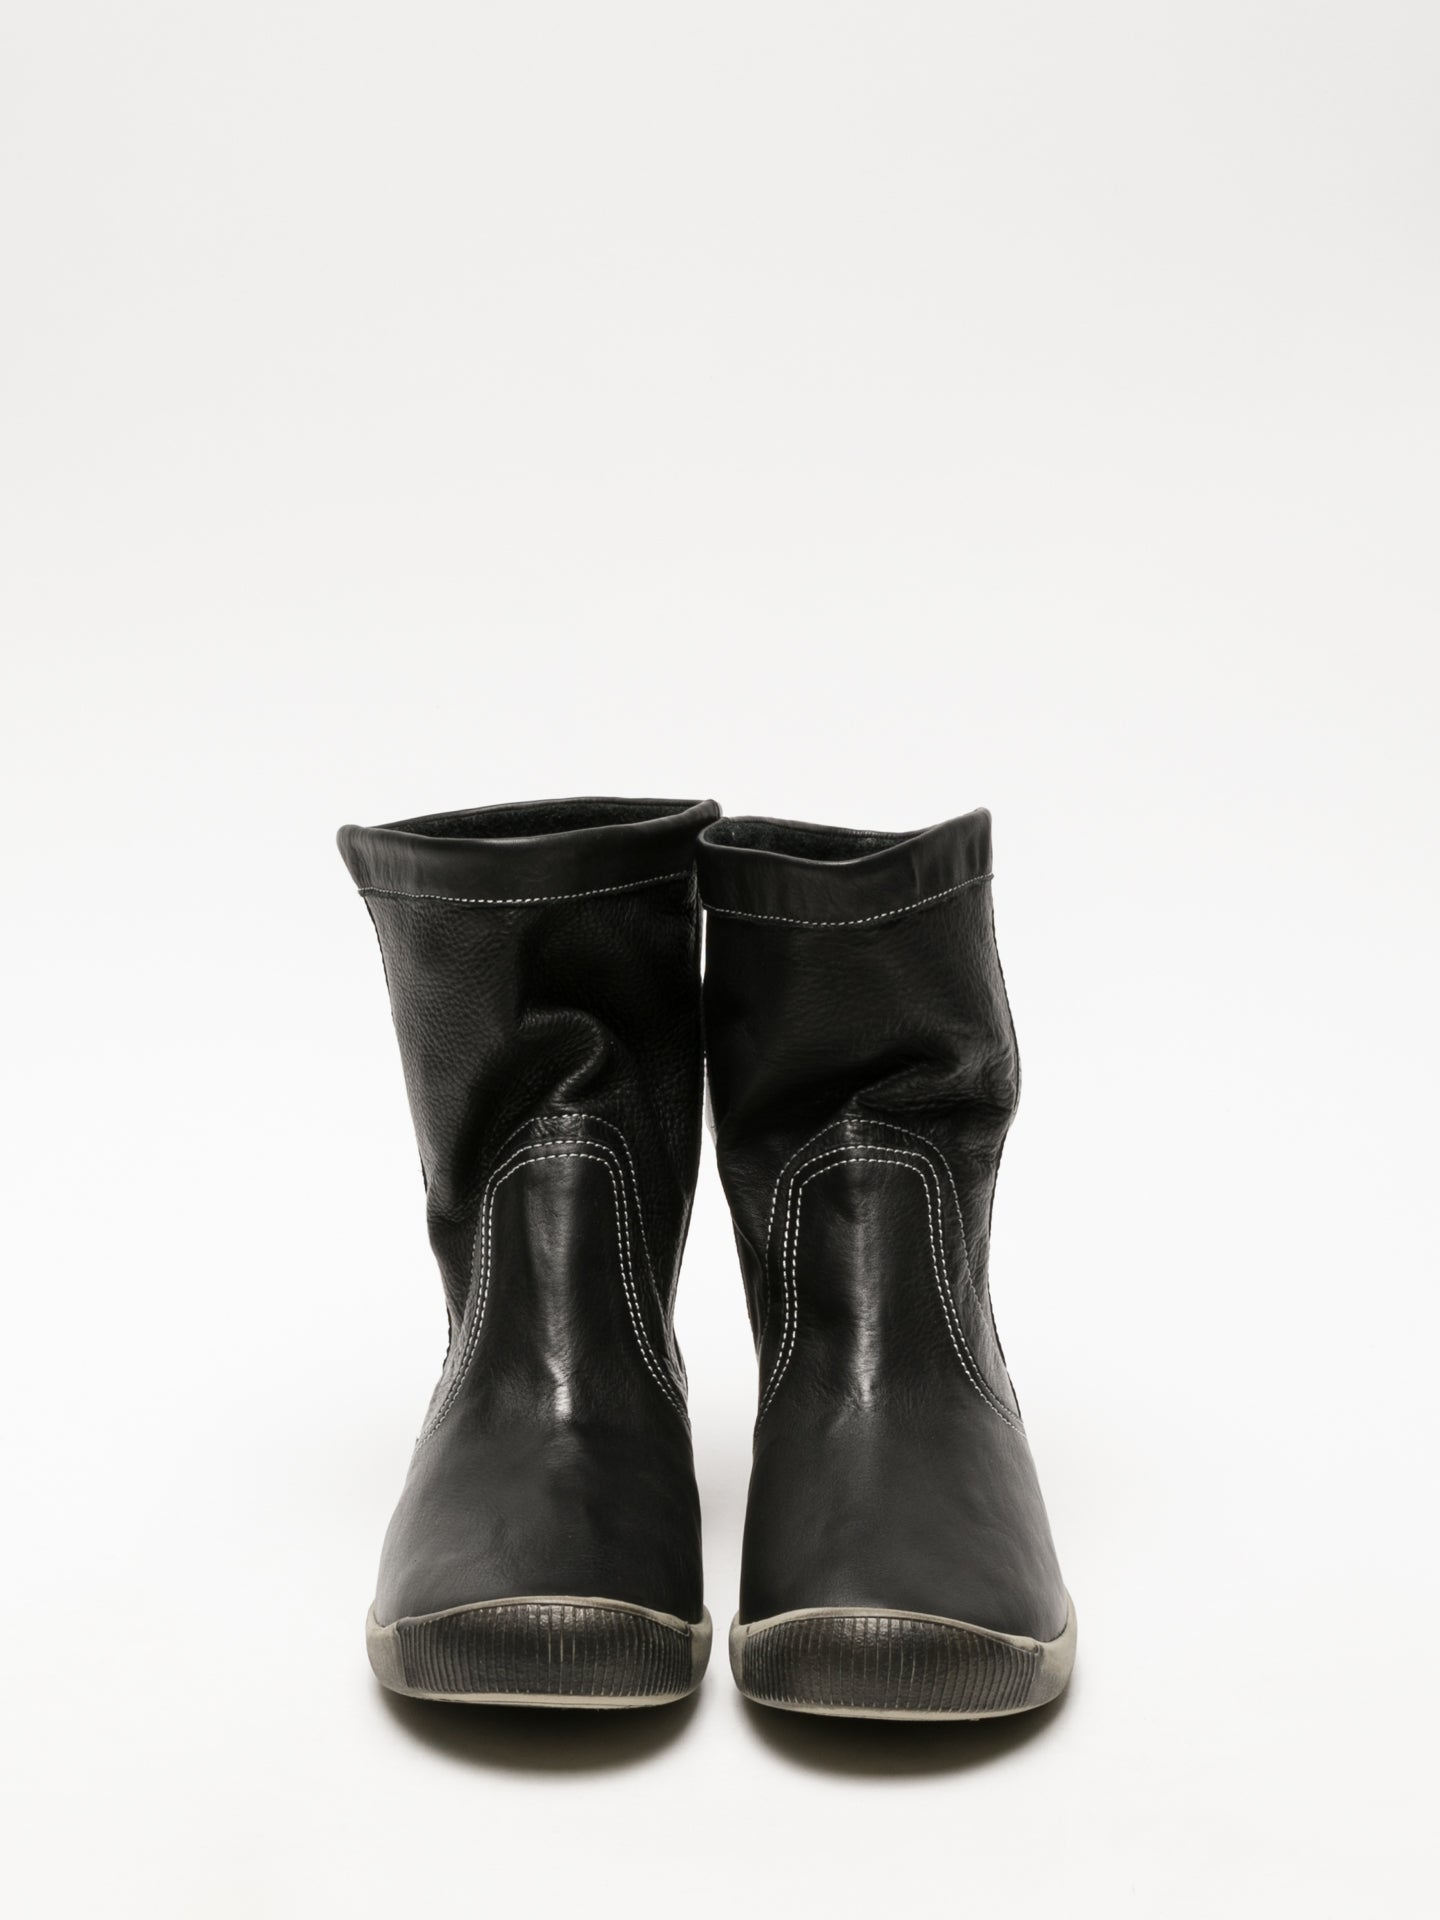 Softinos Black Round Toe Ankle Boots